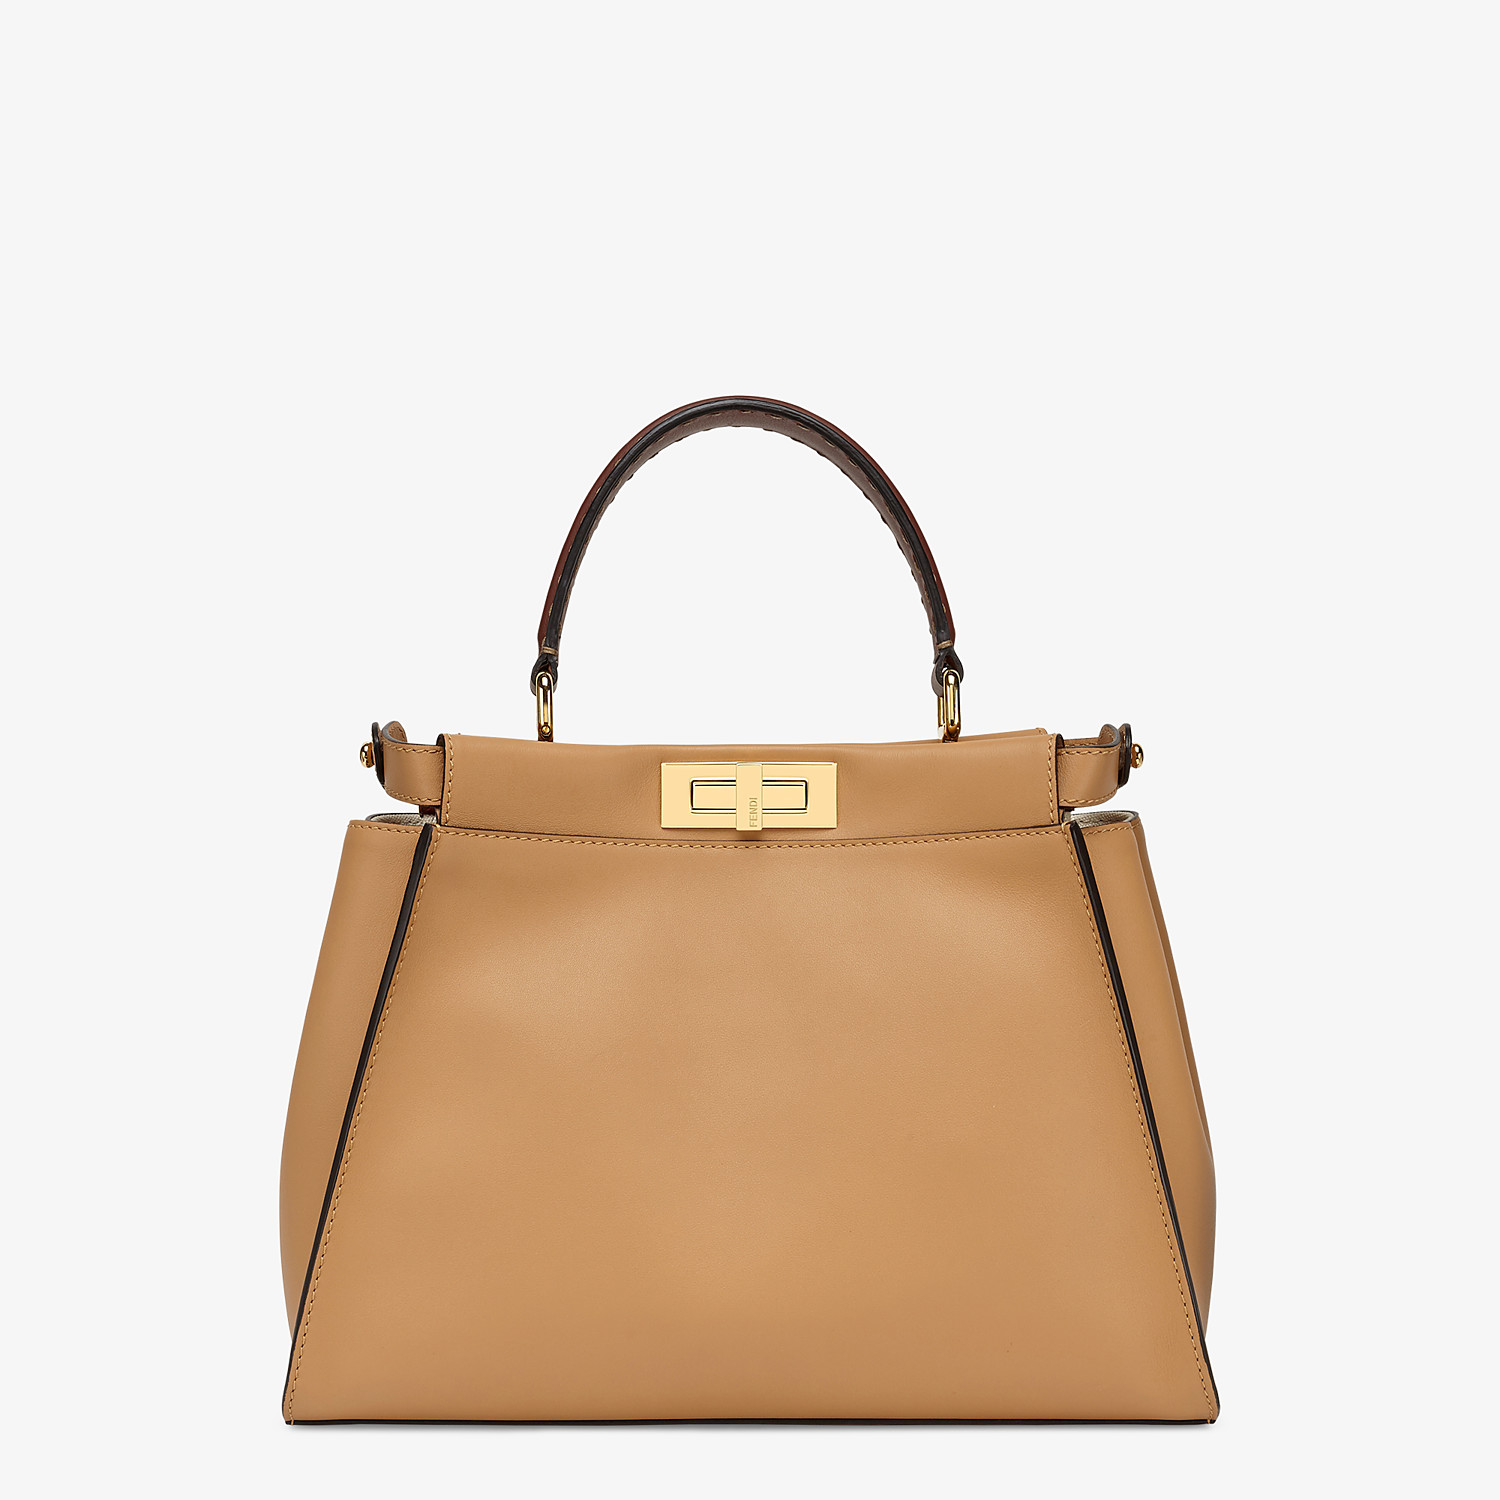 FENDI PEEKABOO ICONIC MEDIUM - Beige leather and FF embroidery bag - view 4 detail